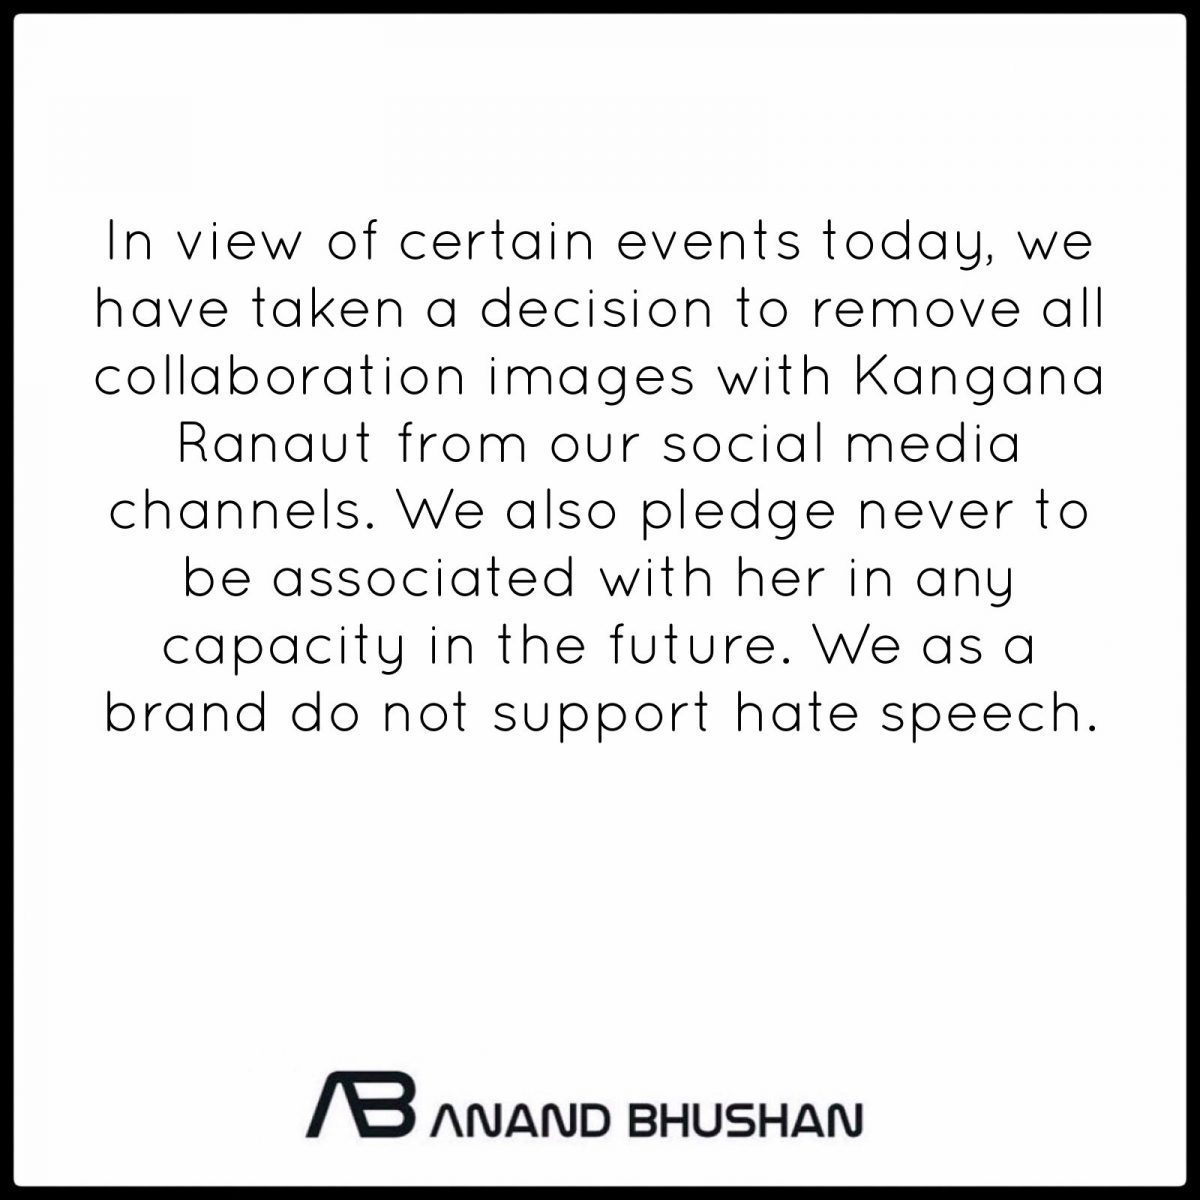 After Twitter ban, two top fashion designers break ties with Kangana Ranaut 1